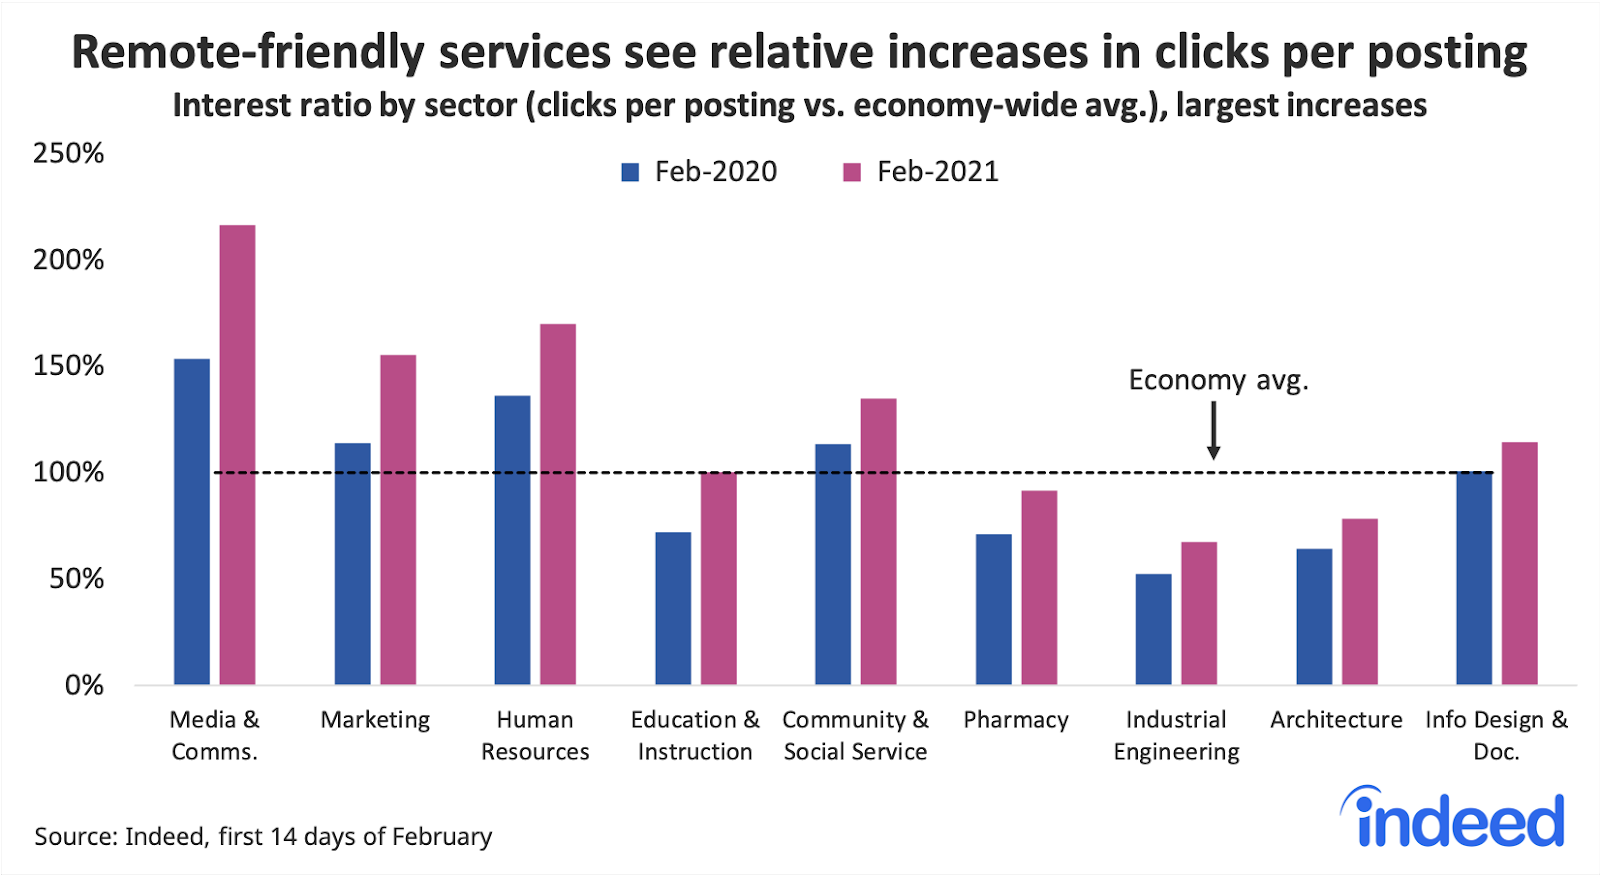 Bar graph showing remote-friendly services see relative increases in clicks per posting